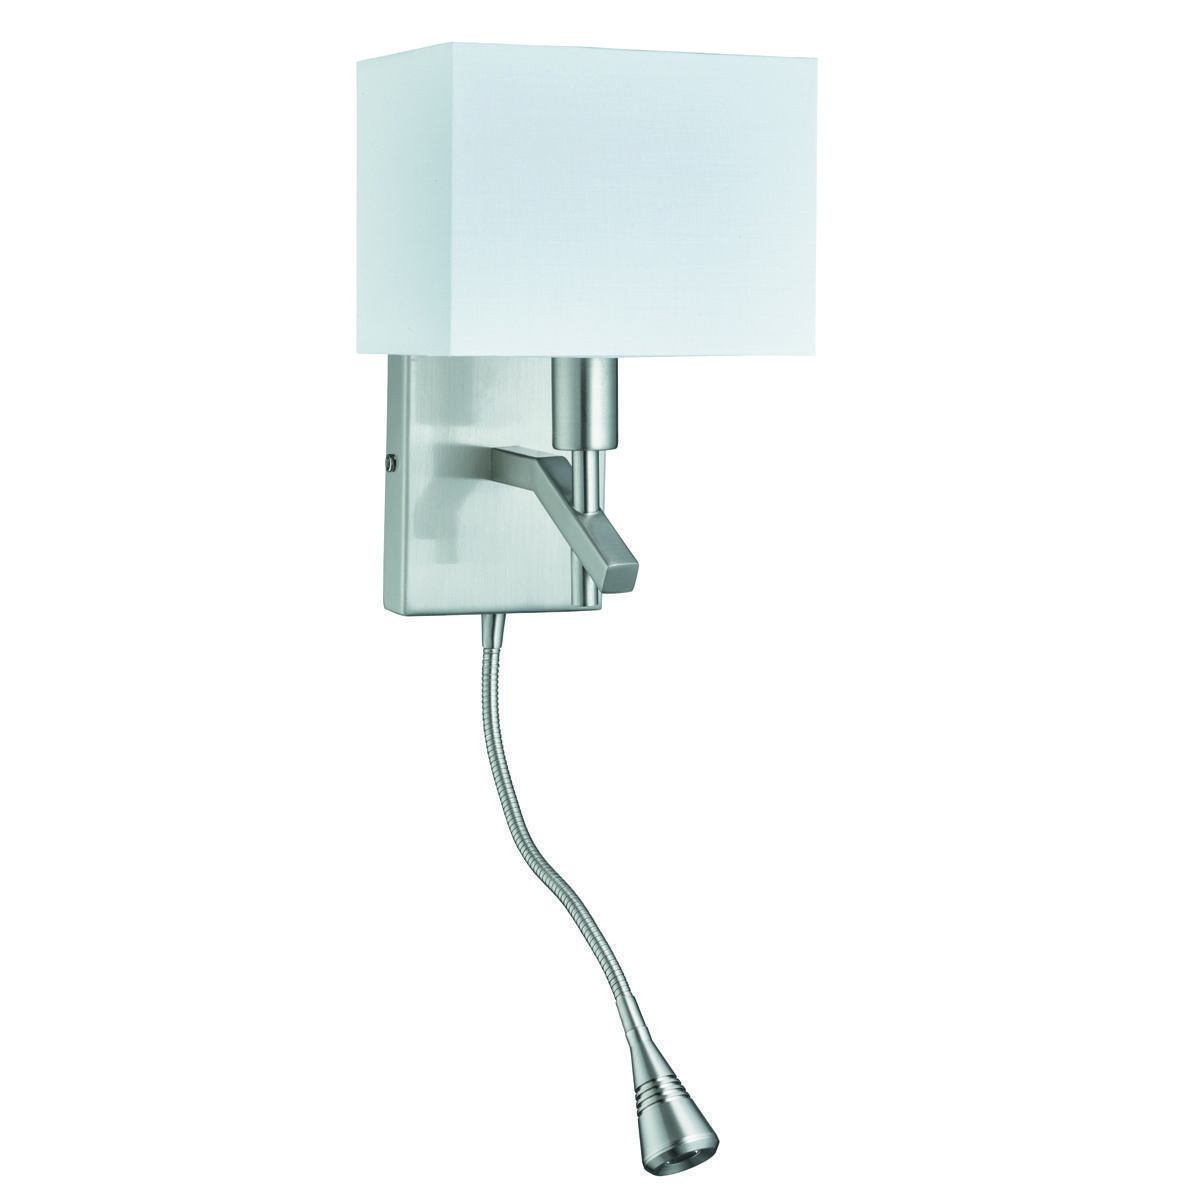 ADJUSTABLE WALL ANGLE WALL BRACKET LED FLEXI-ARM LIGHT SATIN SILVER WHITE RECTANGLE SHADE 6104SS